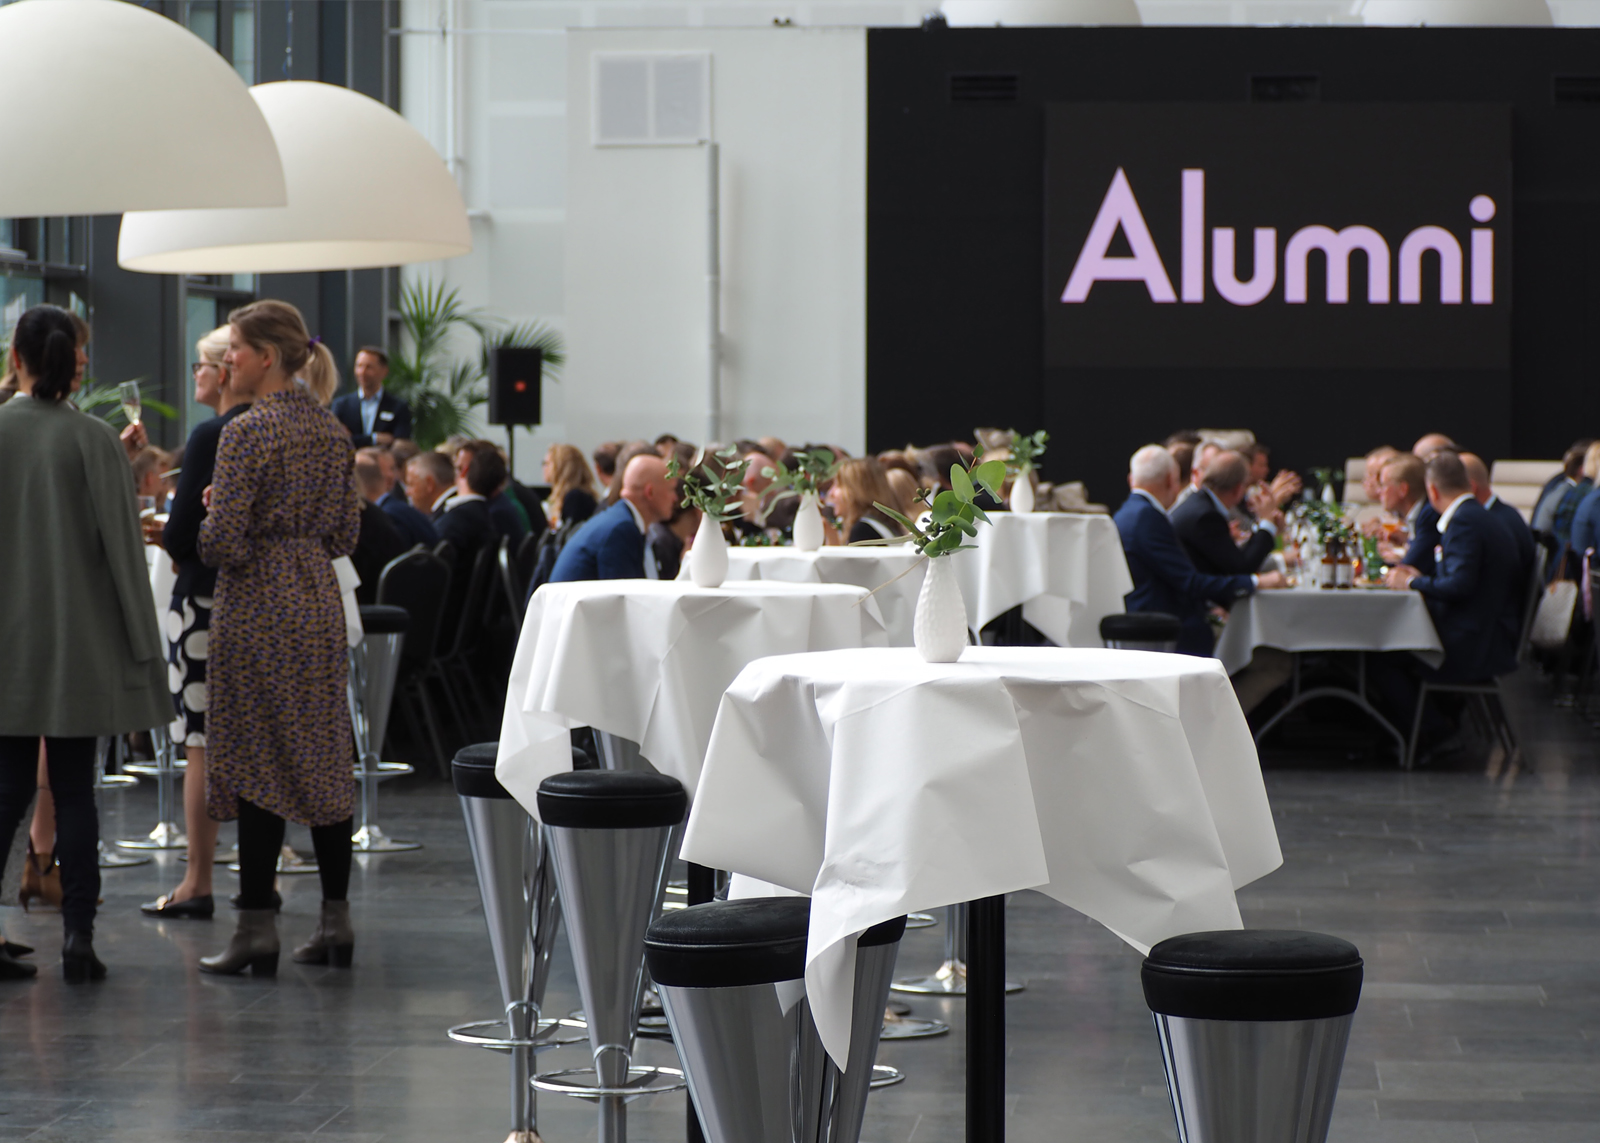 The state of talent - Last week the top corporate decision makers of the Öresund region gathered for the annual Alumni Spring Summit to enjoy a networking lunch and panel discussion. Guest speakers included Allison Kirkby, Lars-Johan Jarnheimer and Inka Mero.